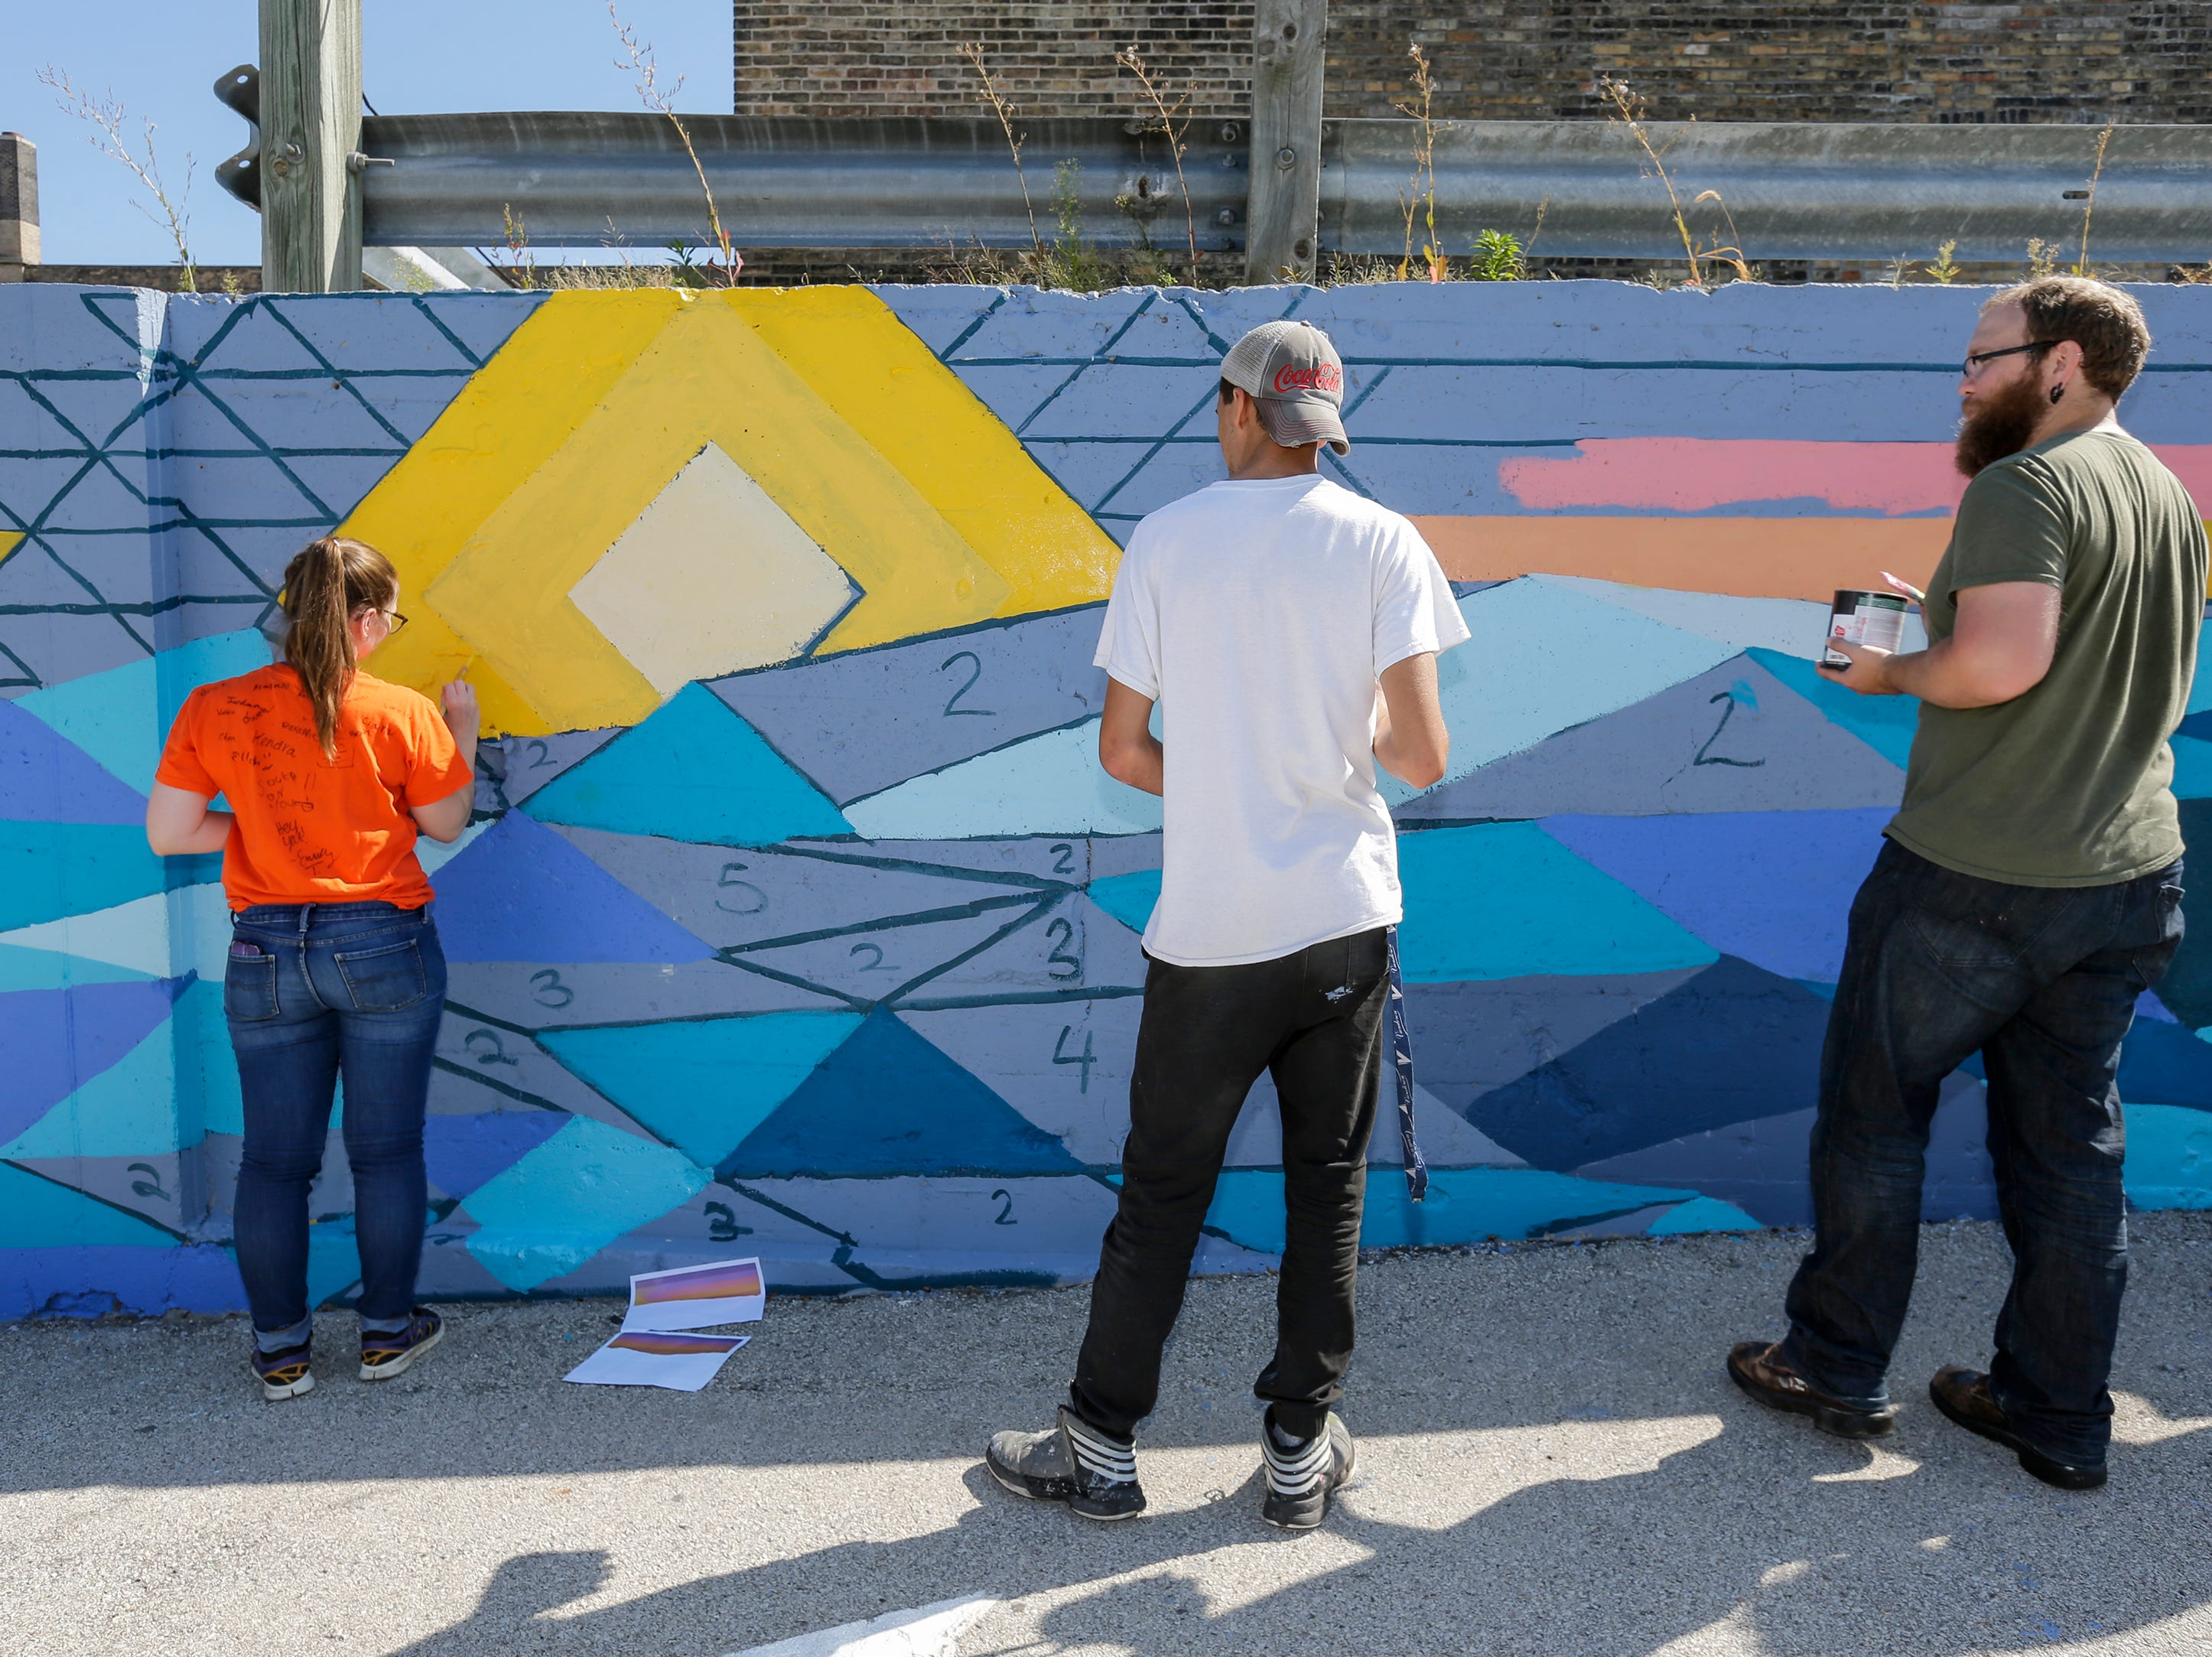 People work on a public mural during Art Slam Saturday, September 15, 2018, in Manitowoc, Wis. The public was invited to fill in a square of the paint-by-numbers mural at 9th and Jay Street. Josh Clark/USA TODAY NETWORK-Wisconsin